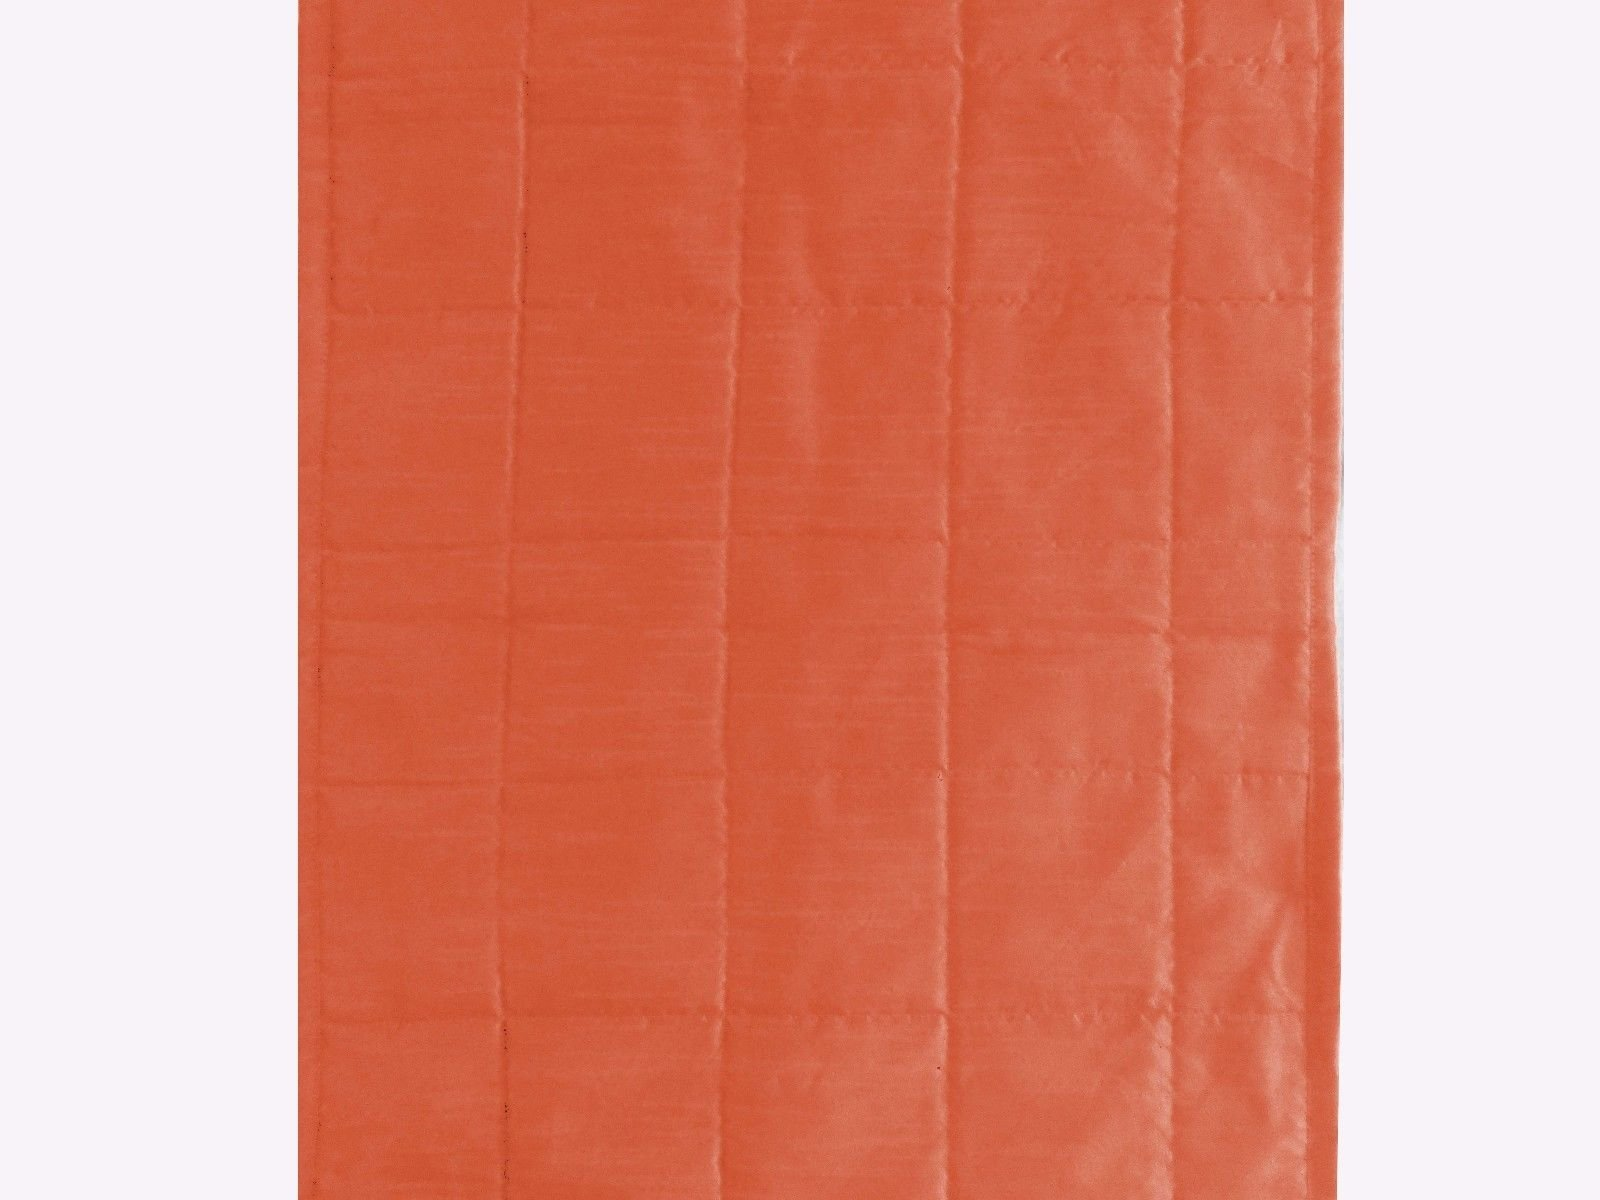 Quilted Bed Runner - Coral Orange Bed Scarf Long Side Runner Throw King/Queen/Twin Size with Decorative Cushion Cover Polyester 20'' Wide X 86'' Long (50 cm x 218 cm) by Saffron